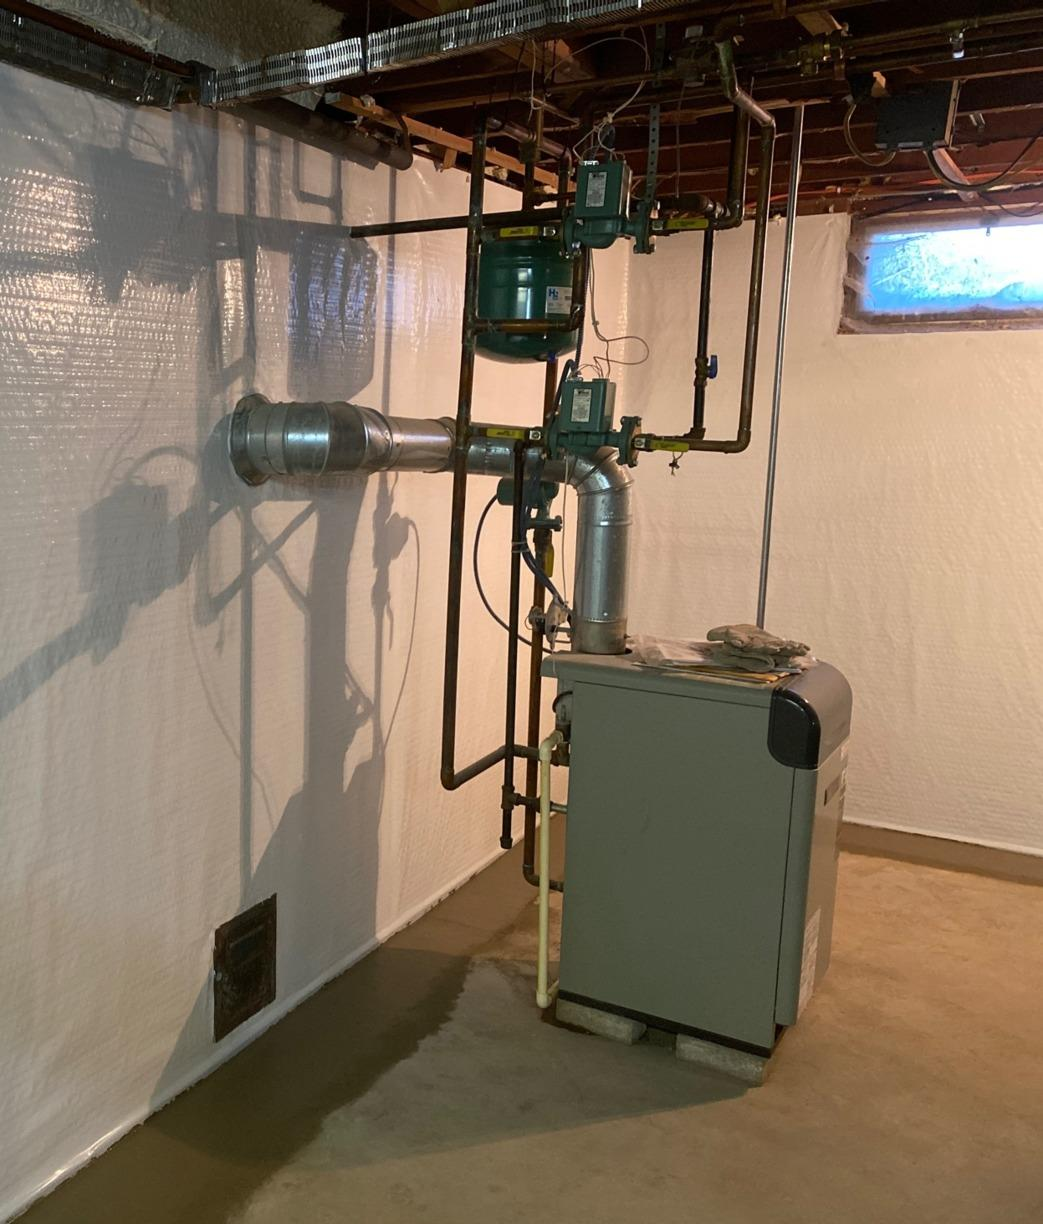 Basement Waterproofing in Tomah, WI - After Photo